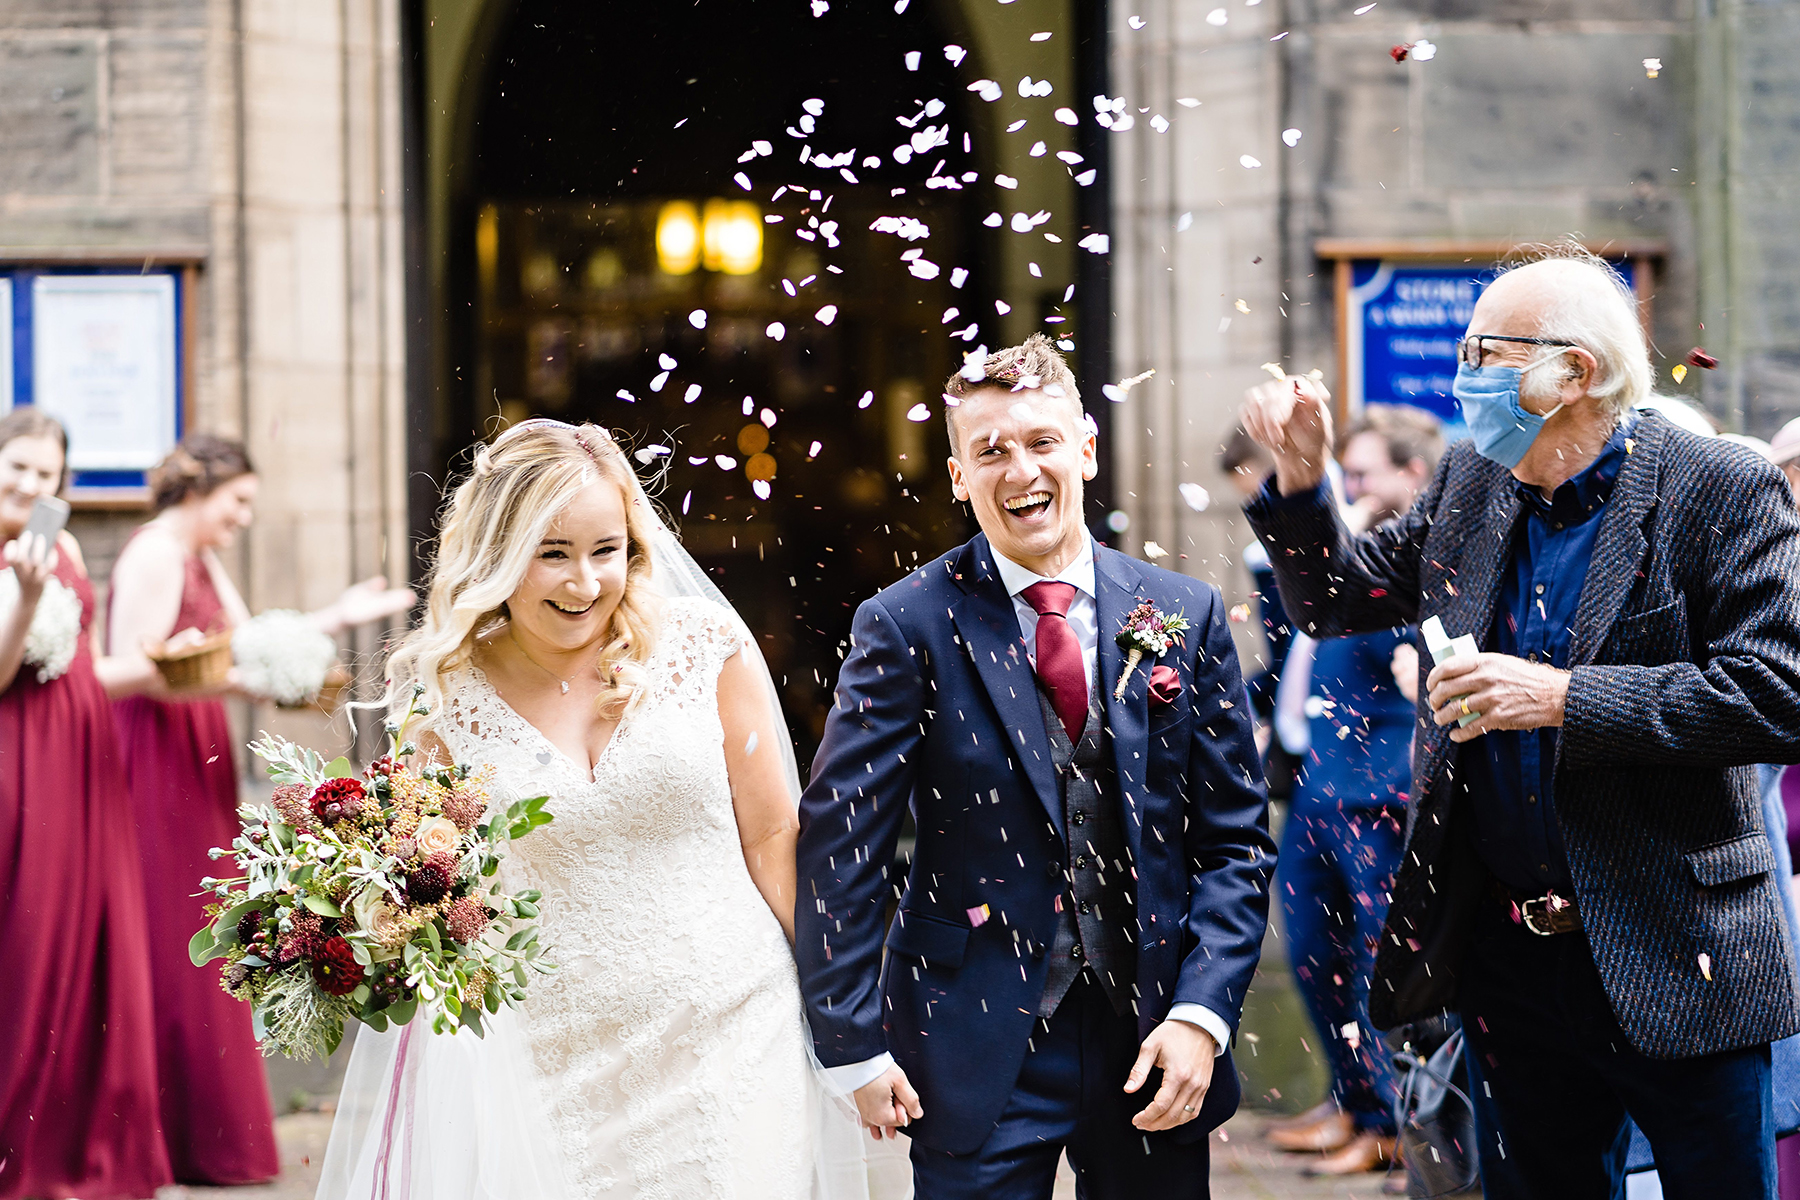 Confetti Bride and Groom Wedding Photography